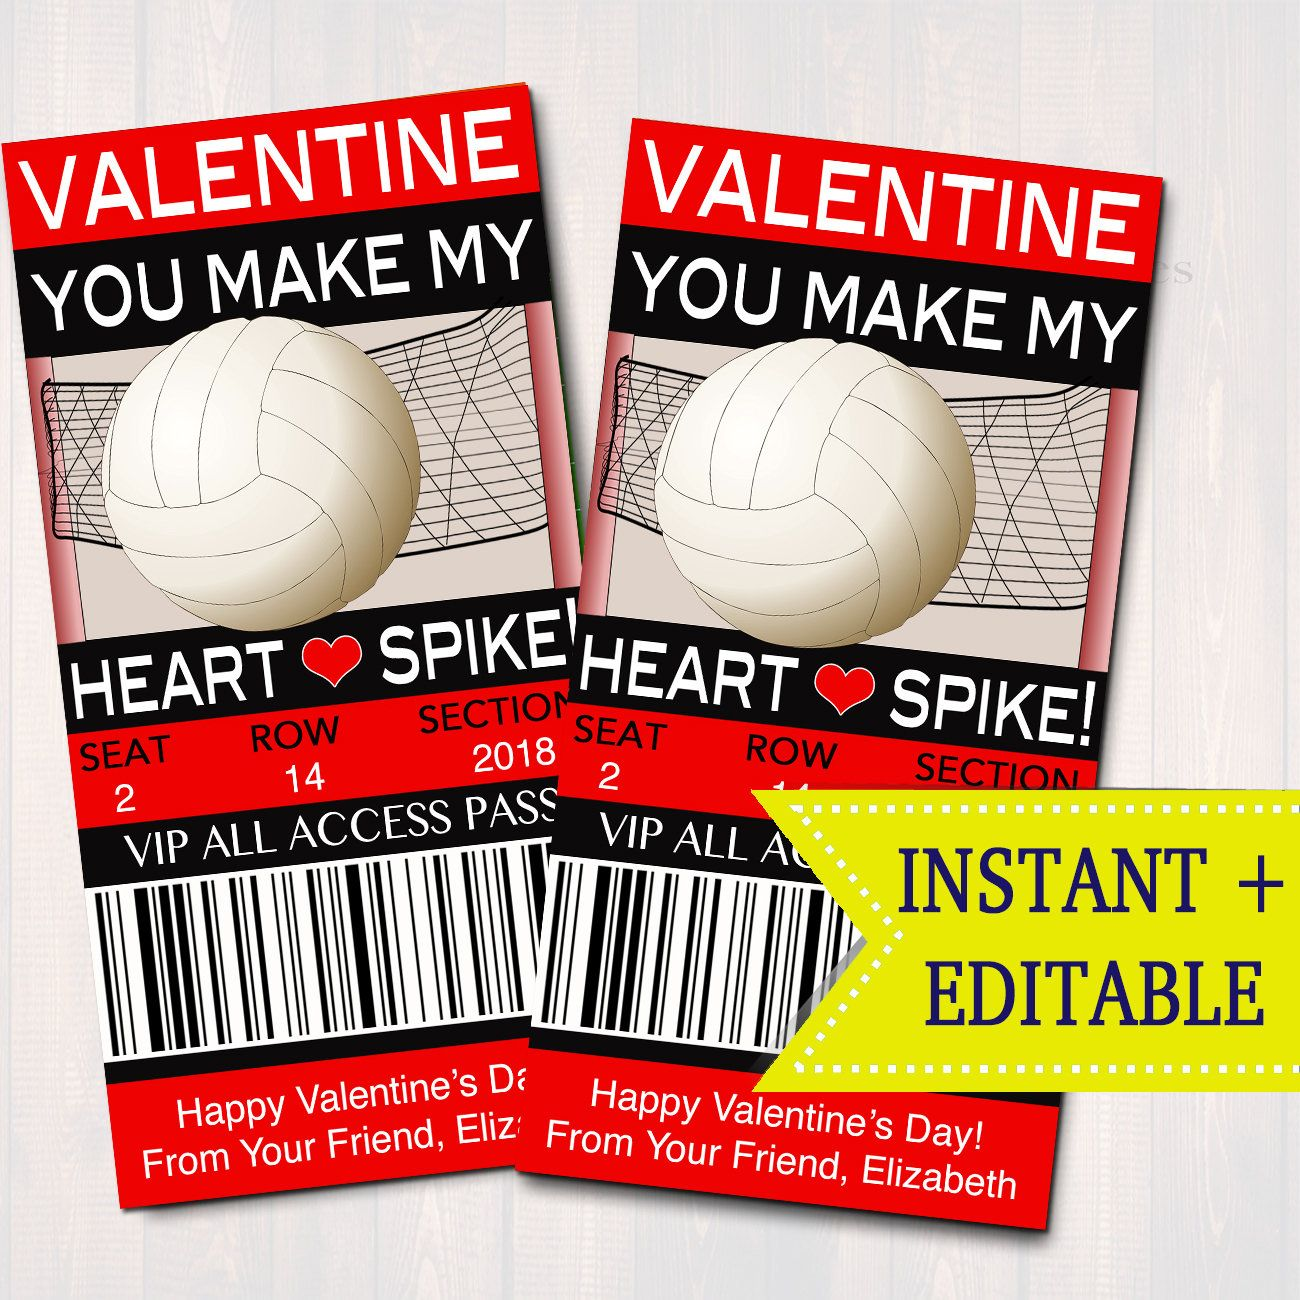 Editable Volleyball Ticket Valentine S Day Cards Instant Etsy In 2020 Classroom Valentine Valentine Day Cards Easy Diy Valentine S Day Cards